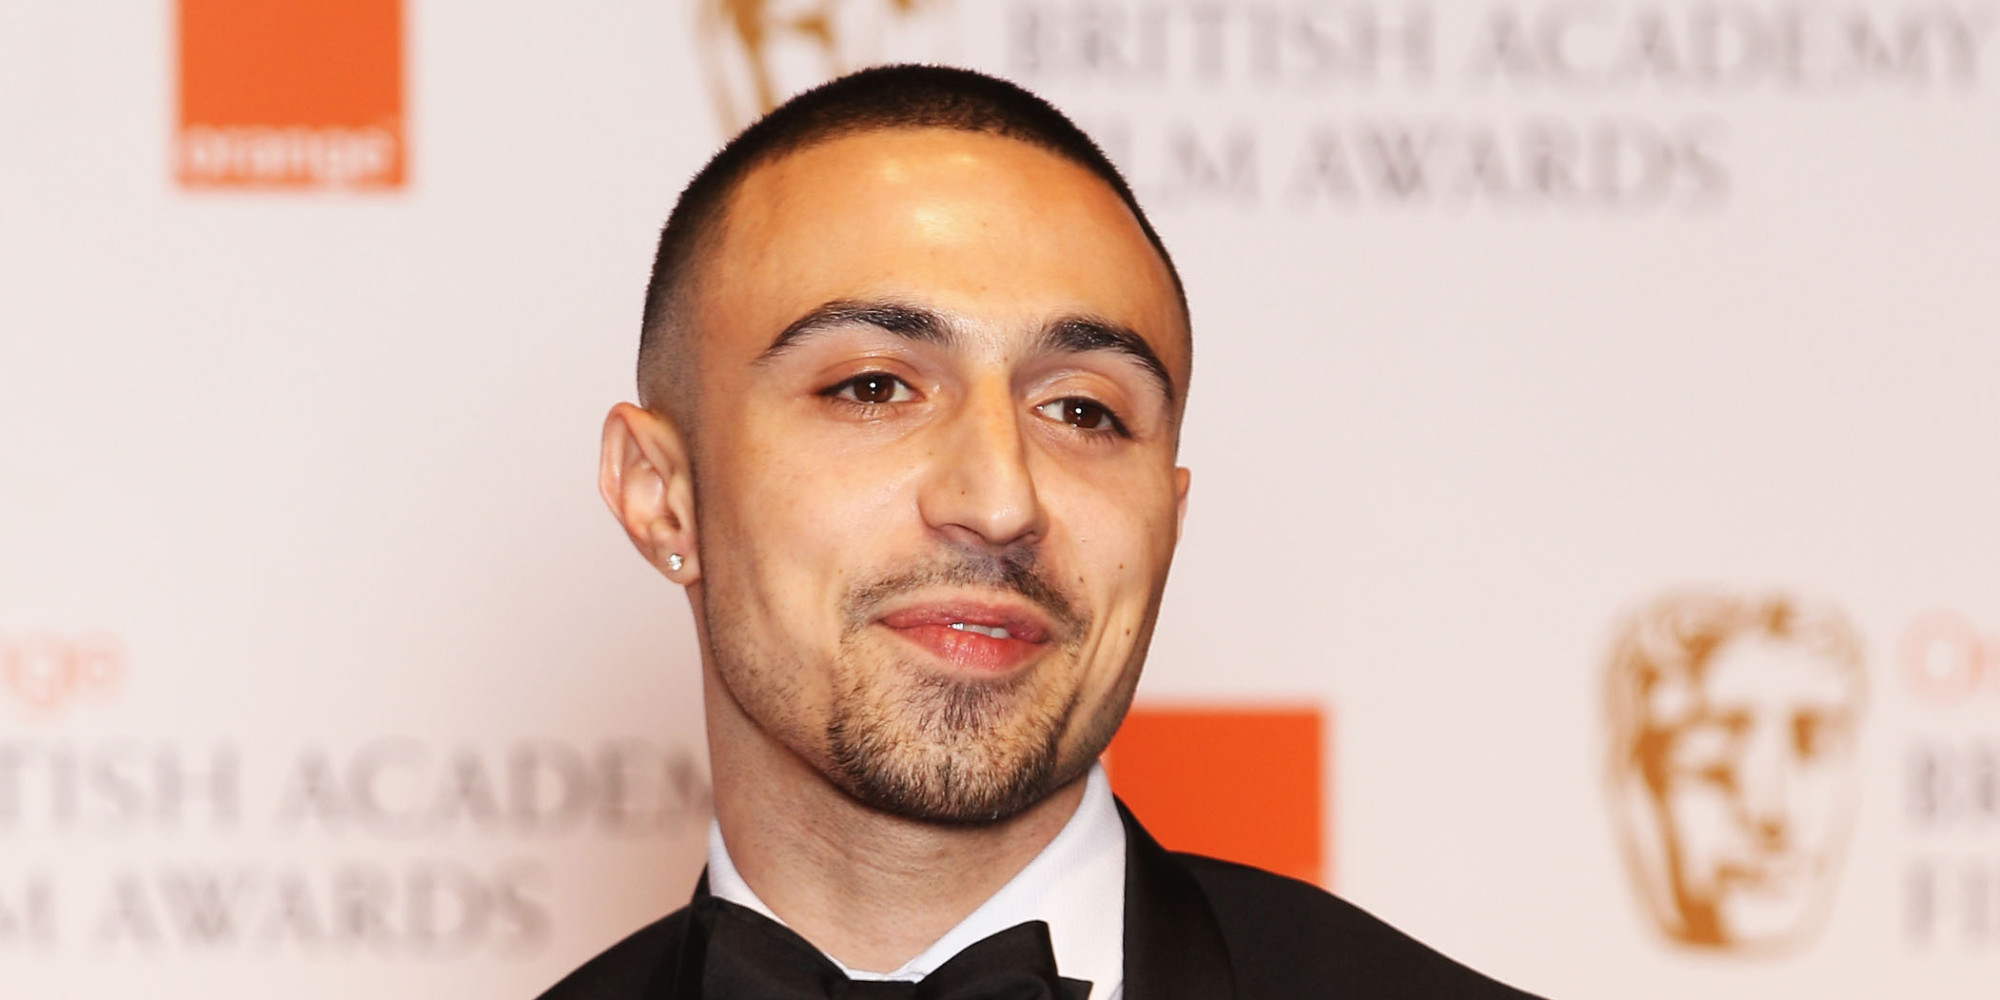 adam deacon instagram